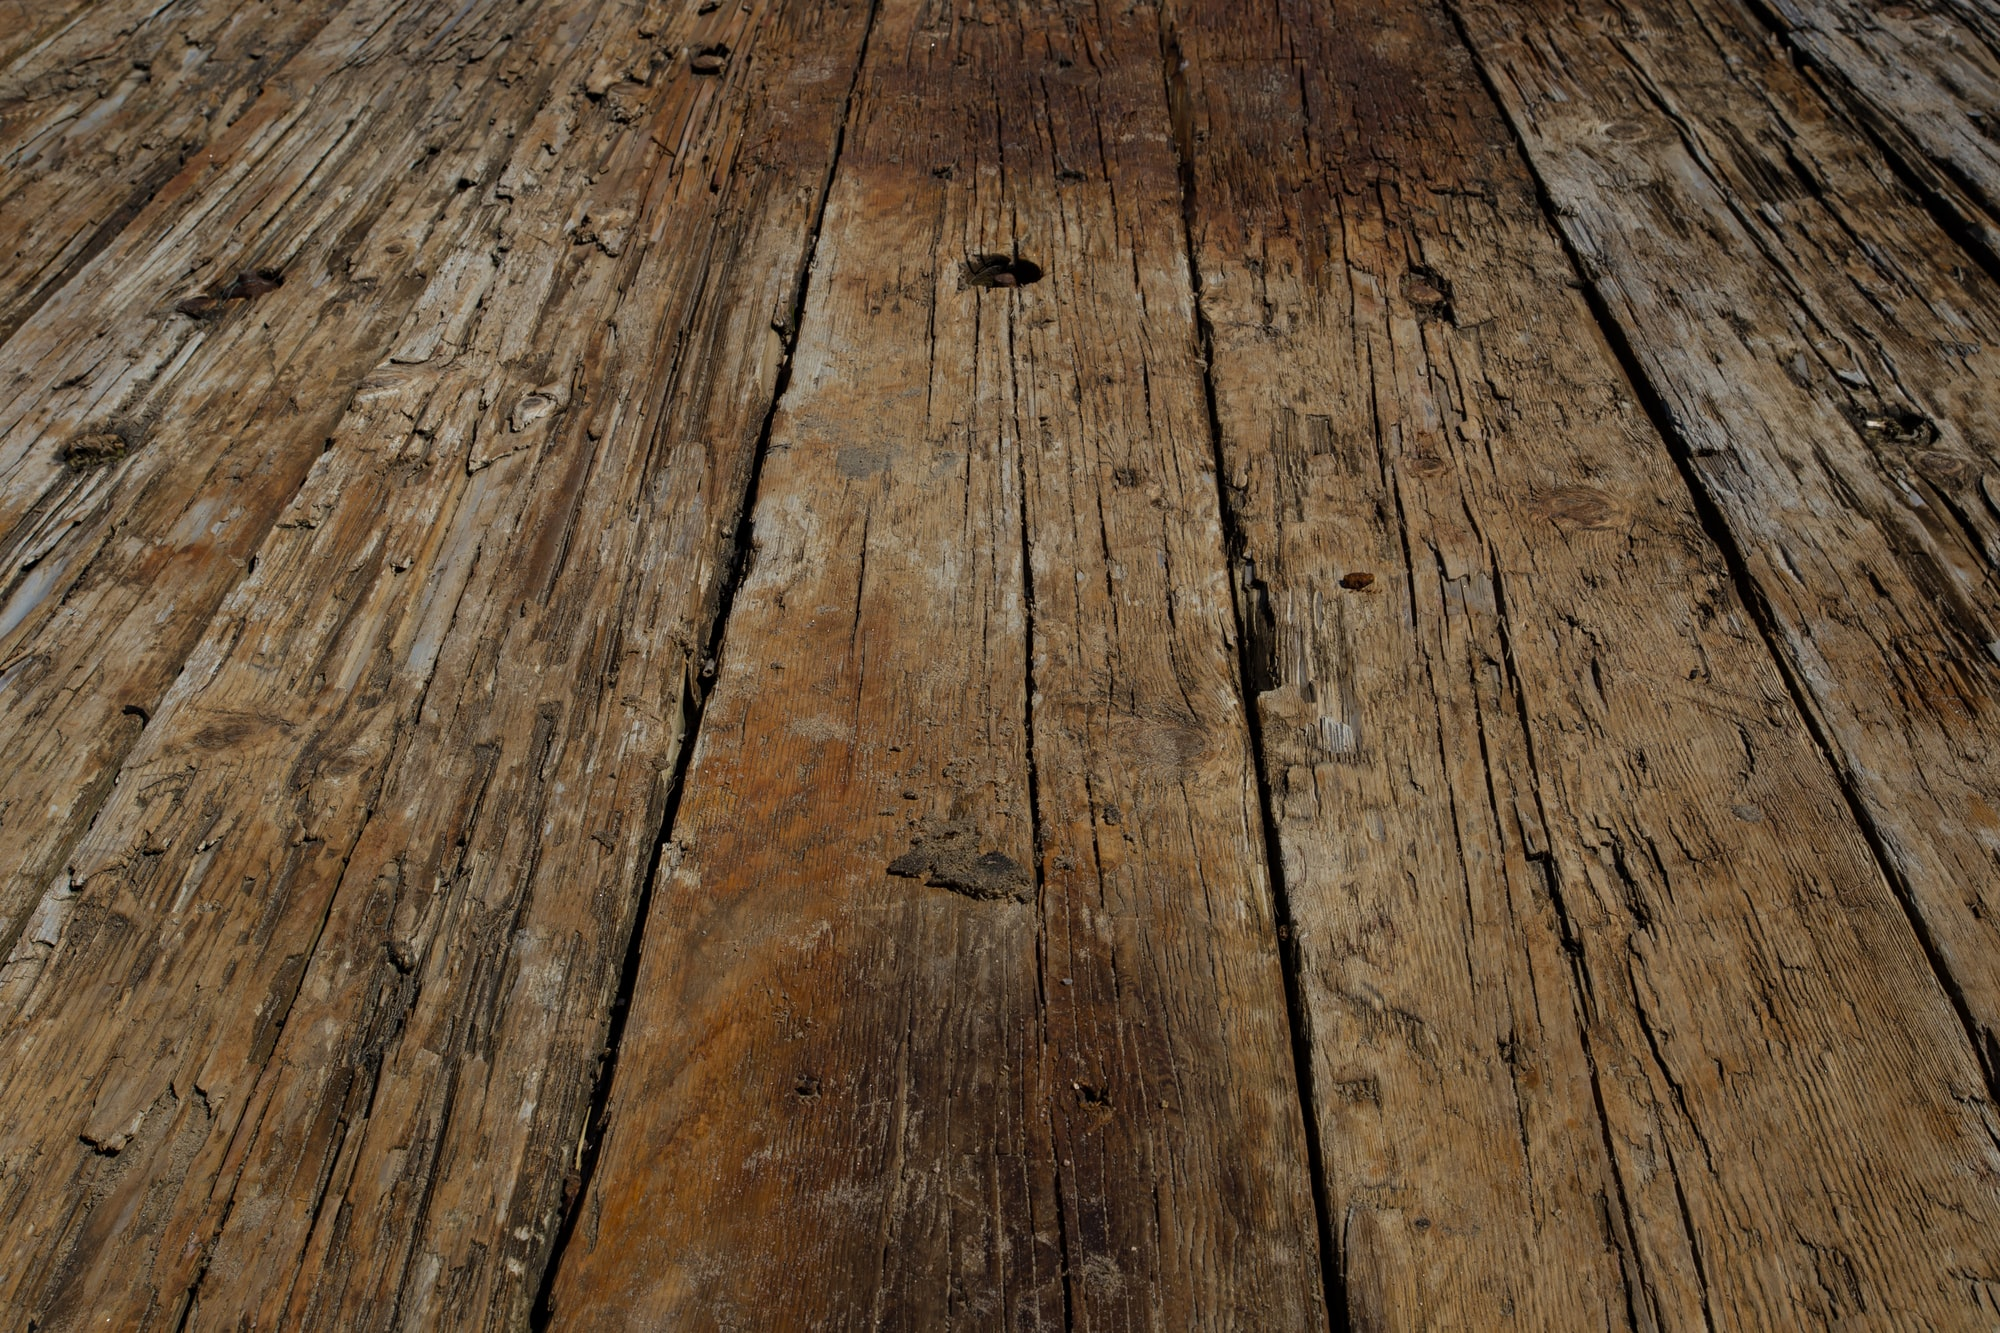 - Part of a 30 days streak of Unsplash uploads - Wandering on the shore of the St Lawrence river when I stumbled upon a shipwreck. Among the last things that were remaining were this floor of wood. The texture, shapes, and lines appealed to me. There's something beautiful in seeing this that once was a magnificent ship. Like a fossil, but of a human built device.